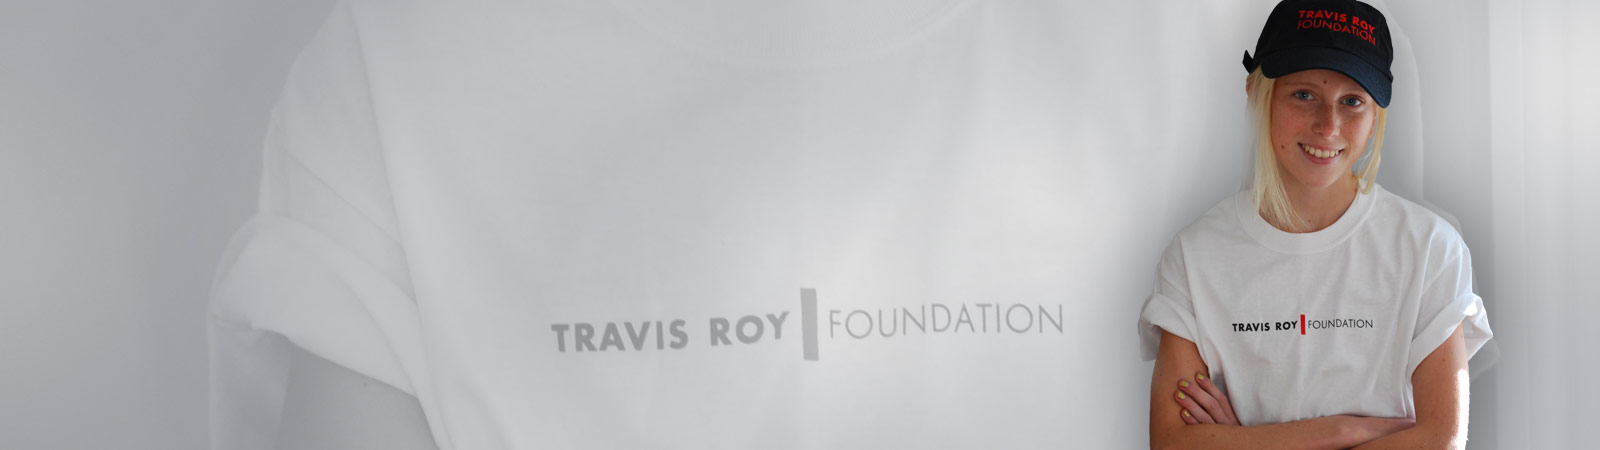 Support Travis Roy Foundation